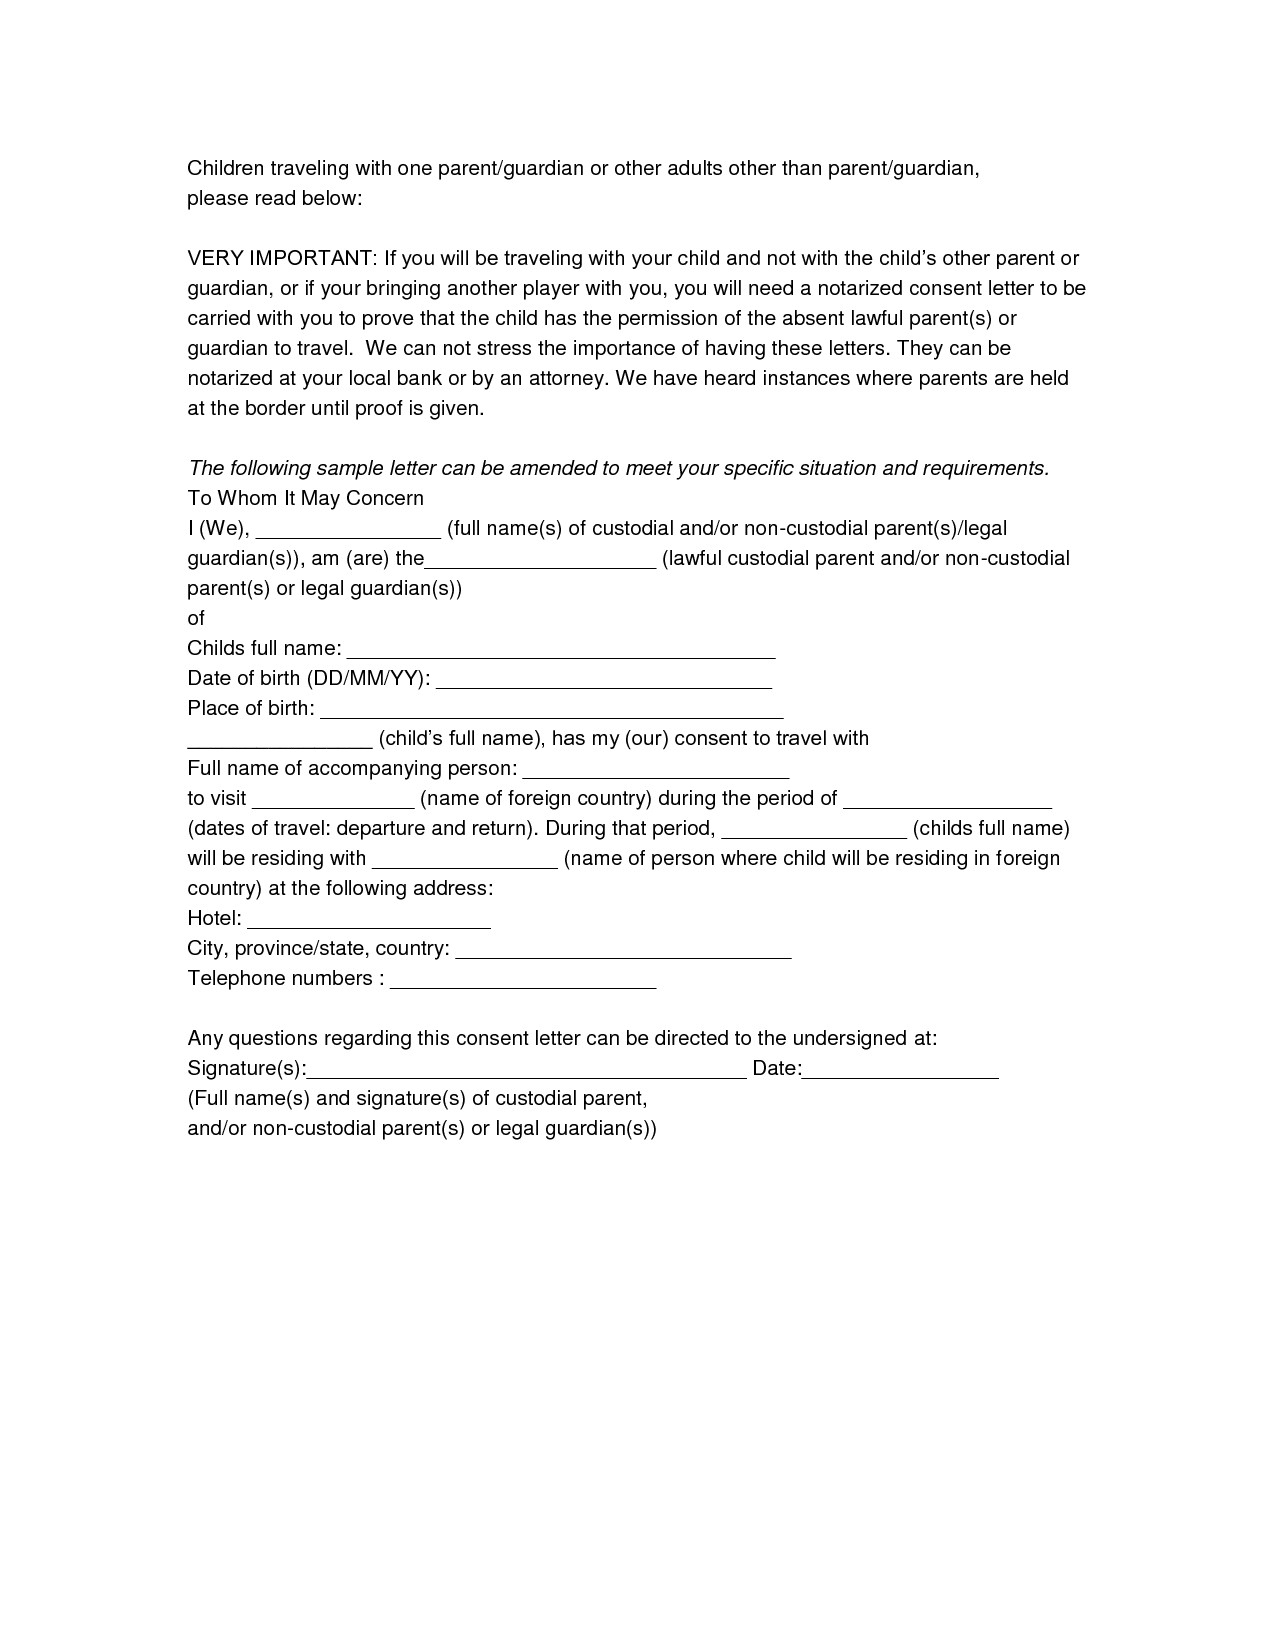 Notarized Travel Consent Letter Template - Child Support Letter Sampleparents Support Letter format Copy 17